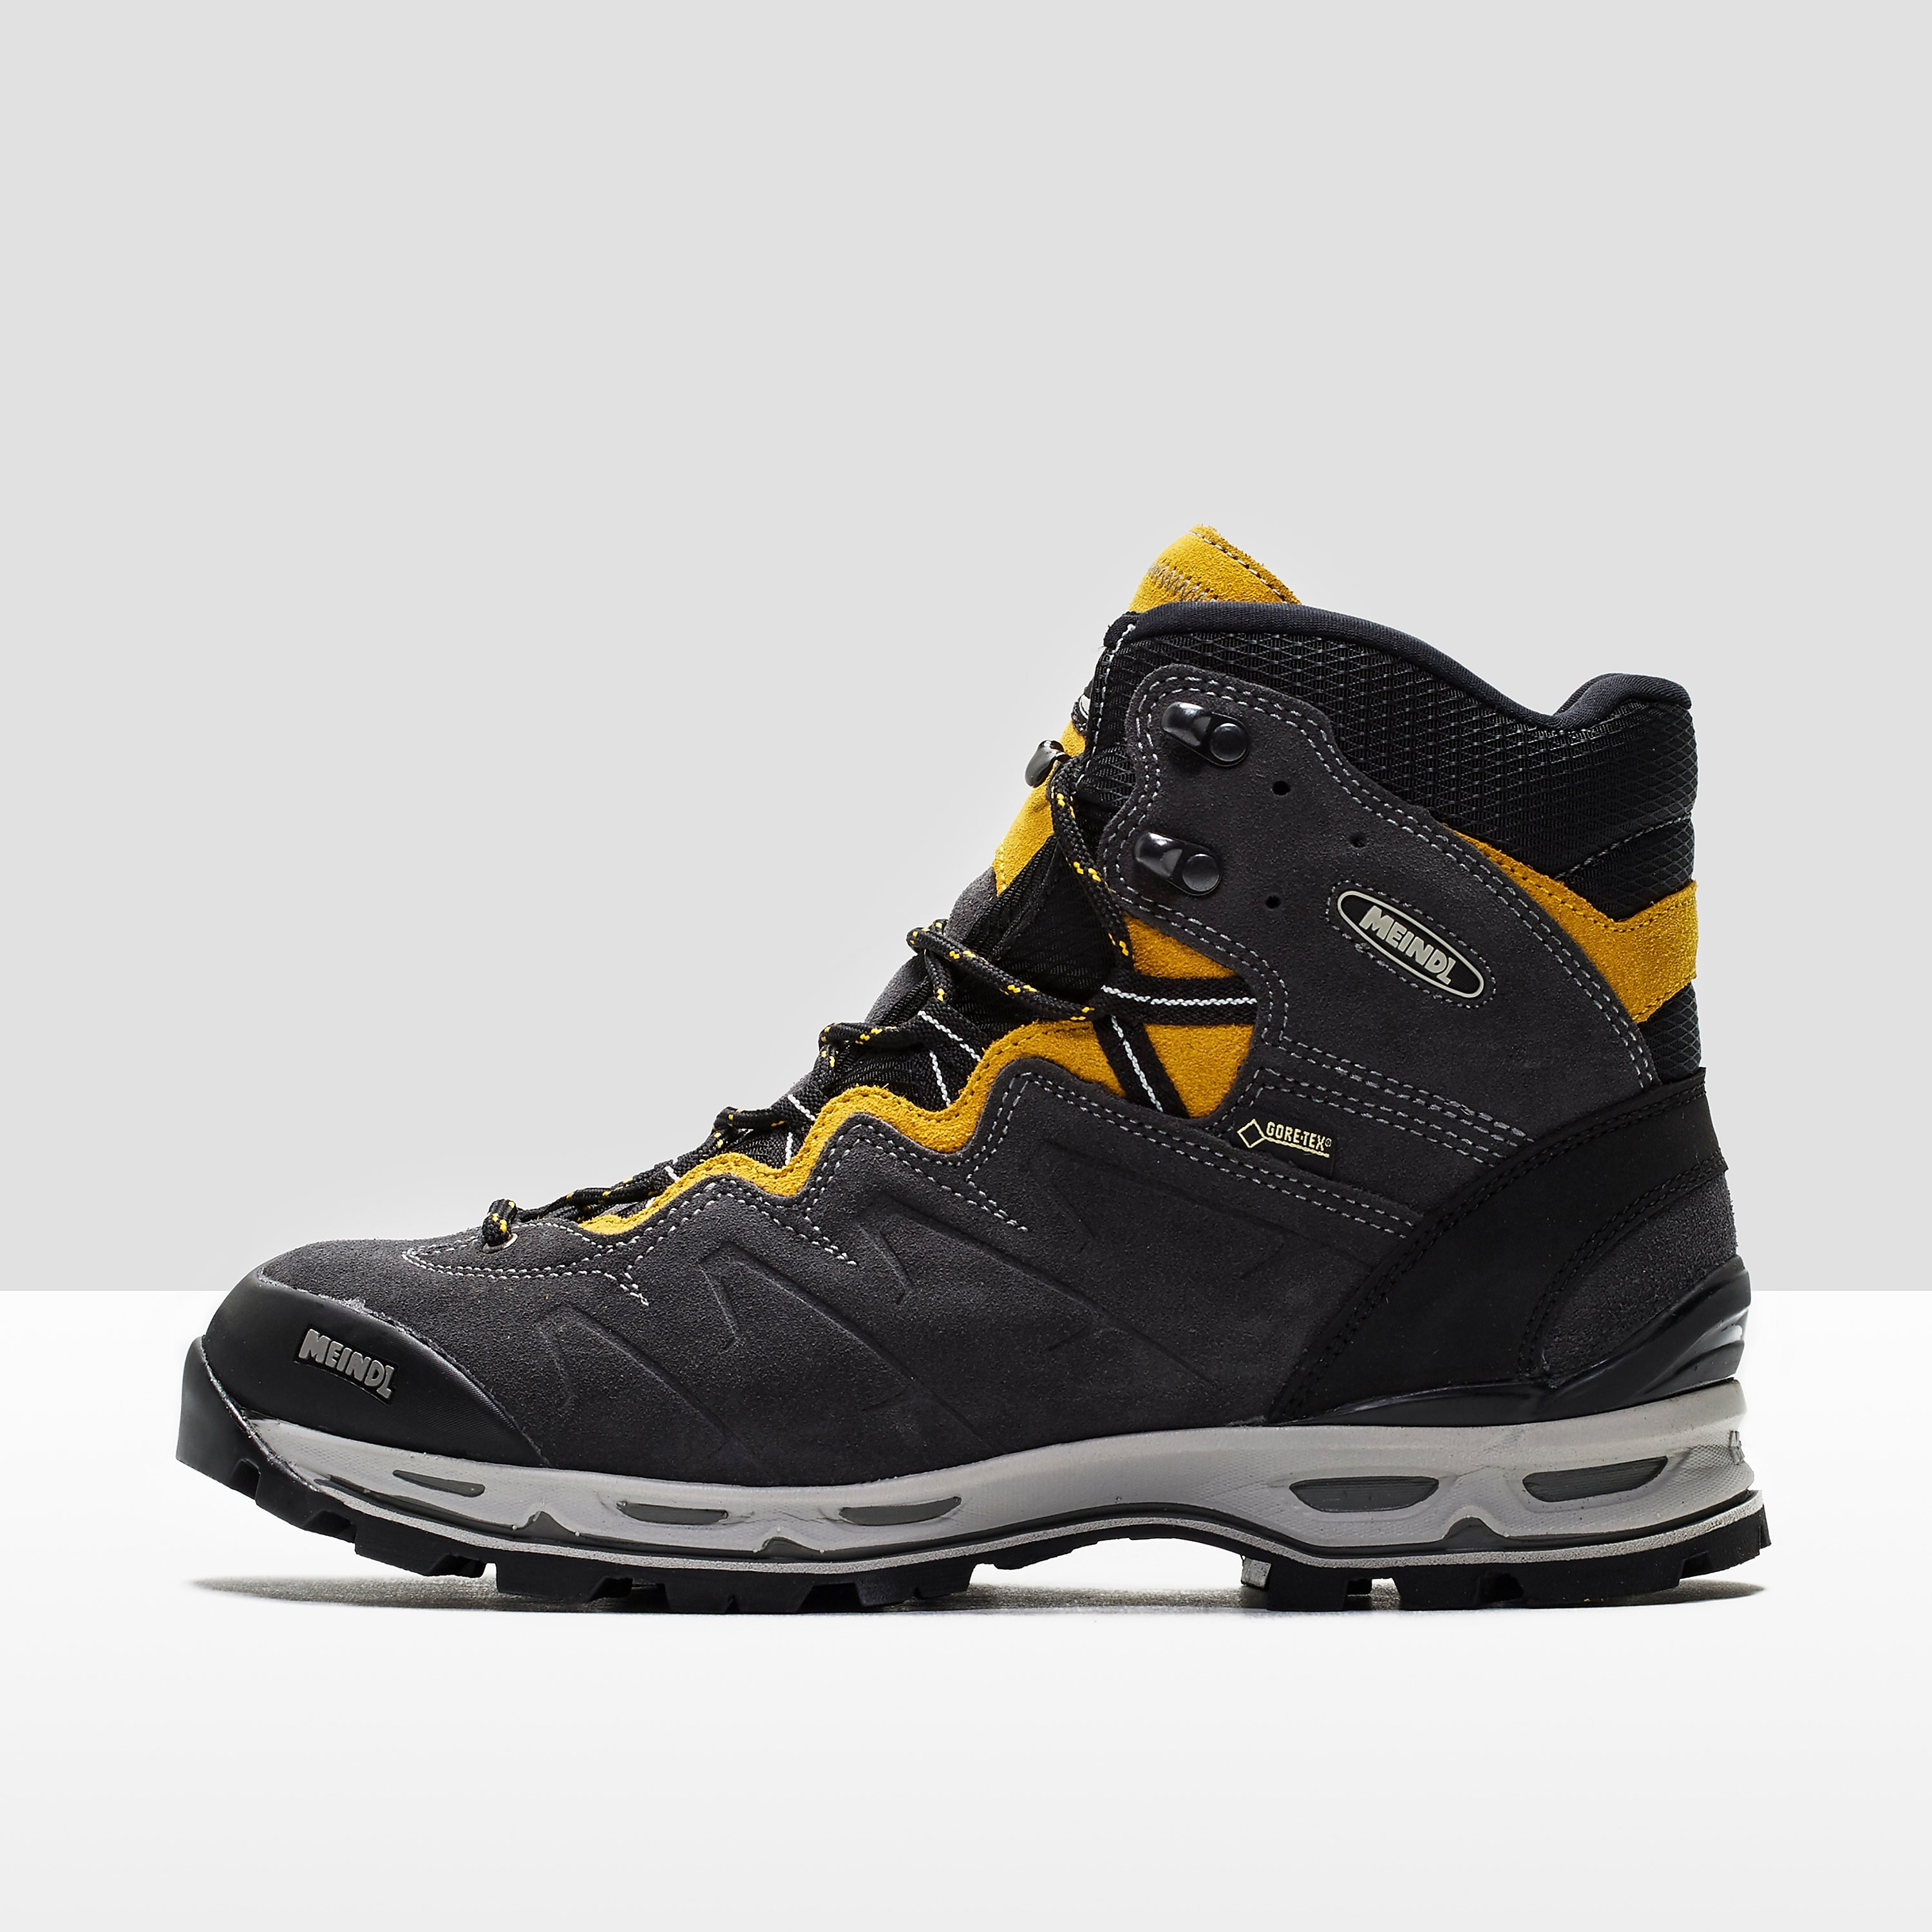 Meindl Minnesota Pro GTX Men's Walking Boots